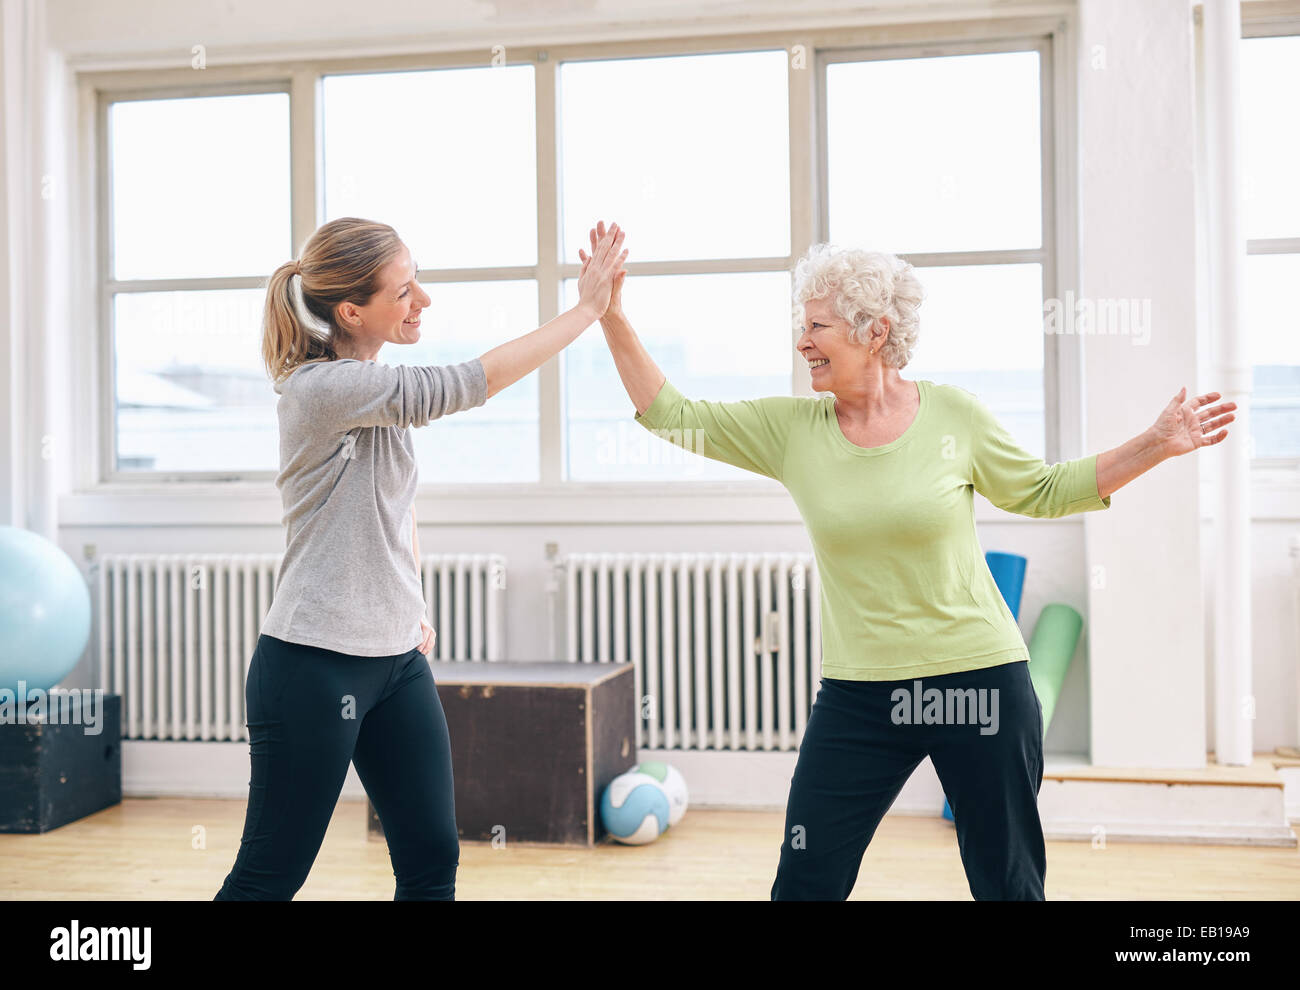 Senior woman giving high five to her physical therapist at rehab. Happy elderly woman celebrating fitness success - Stock Image